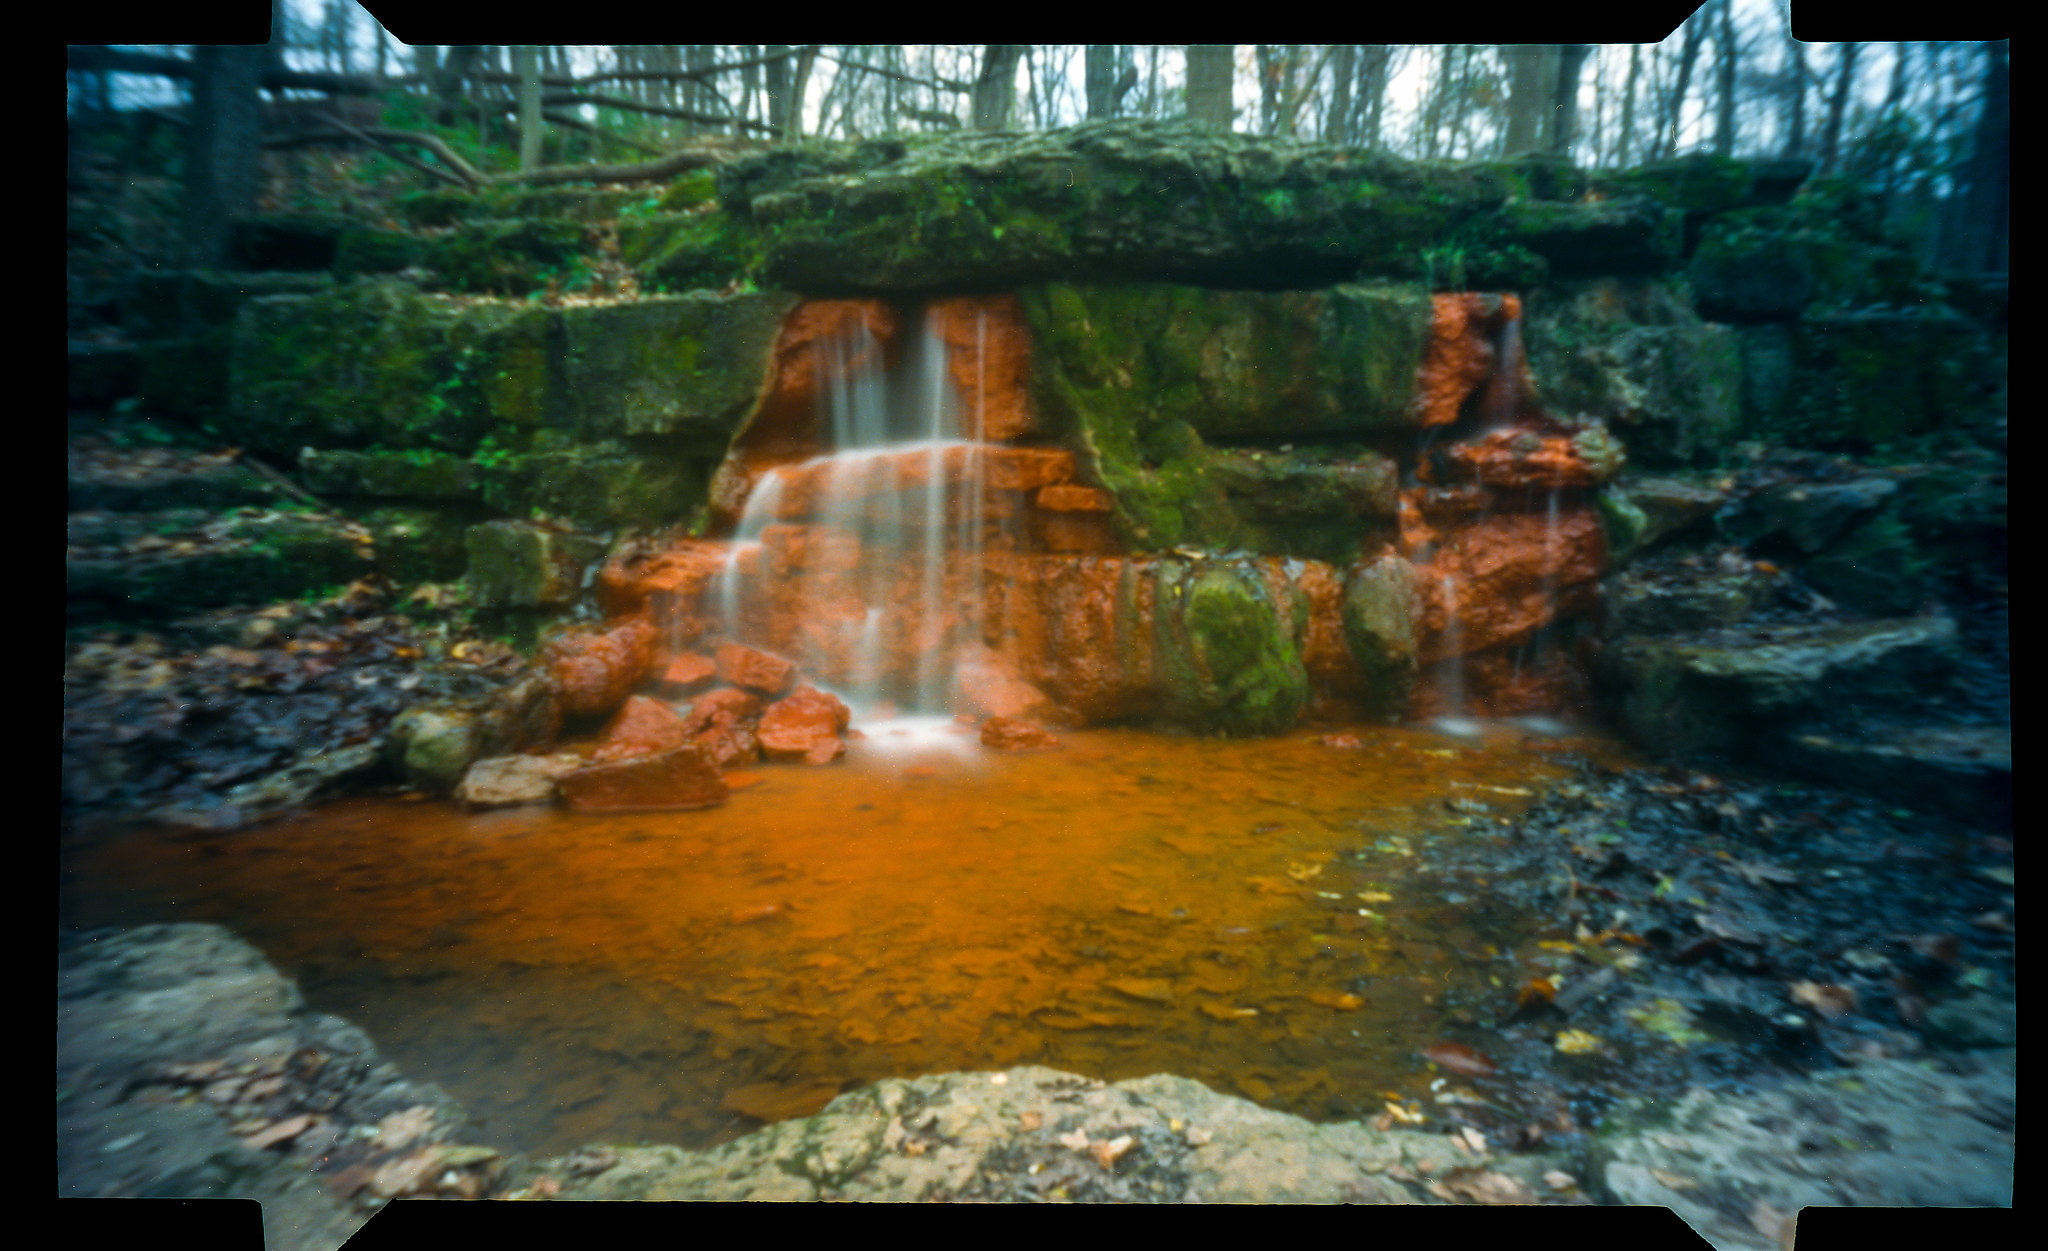 The Yellow Springs at Glen Helen - NOON 612 Pinhole Camera on Kodak Ektar 100 film